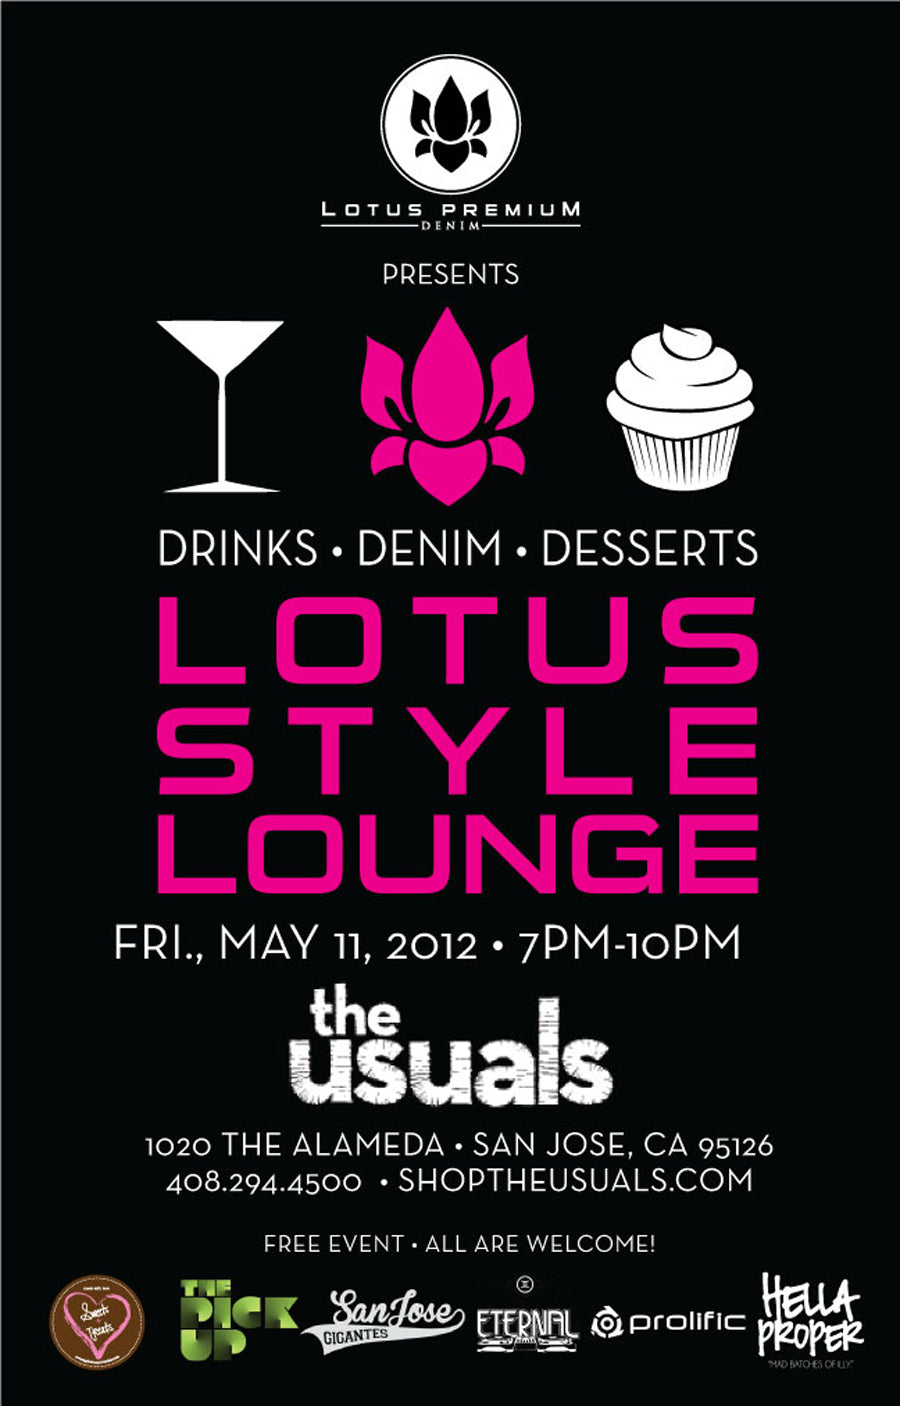 Lotus Premium Denim Lotus Style Lounge at The Usuals Announcement May 2012